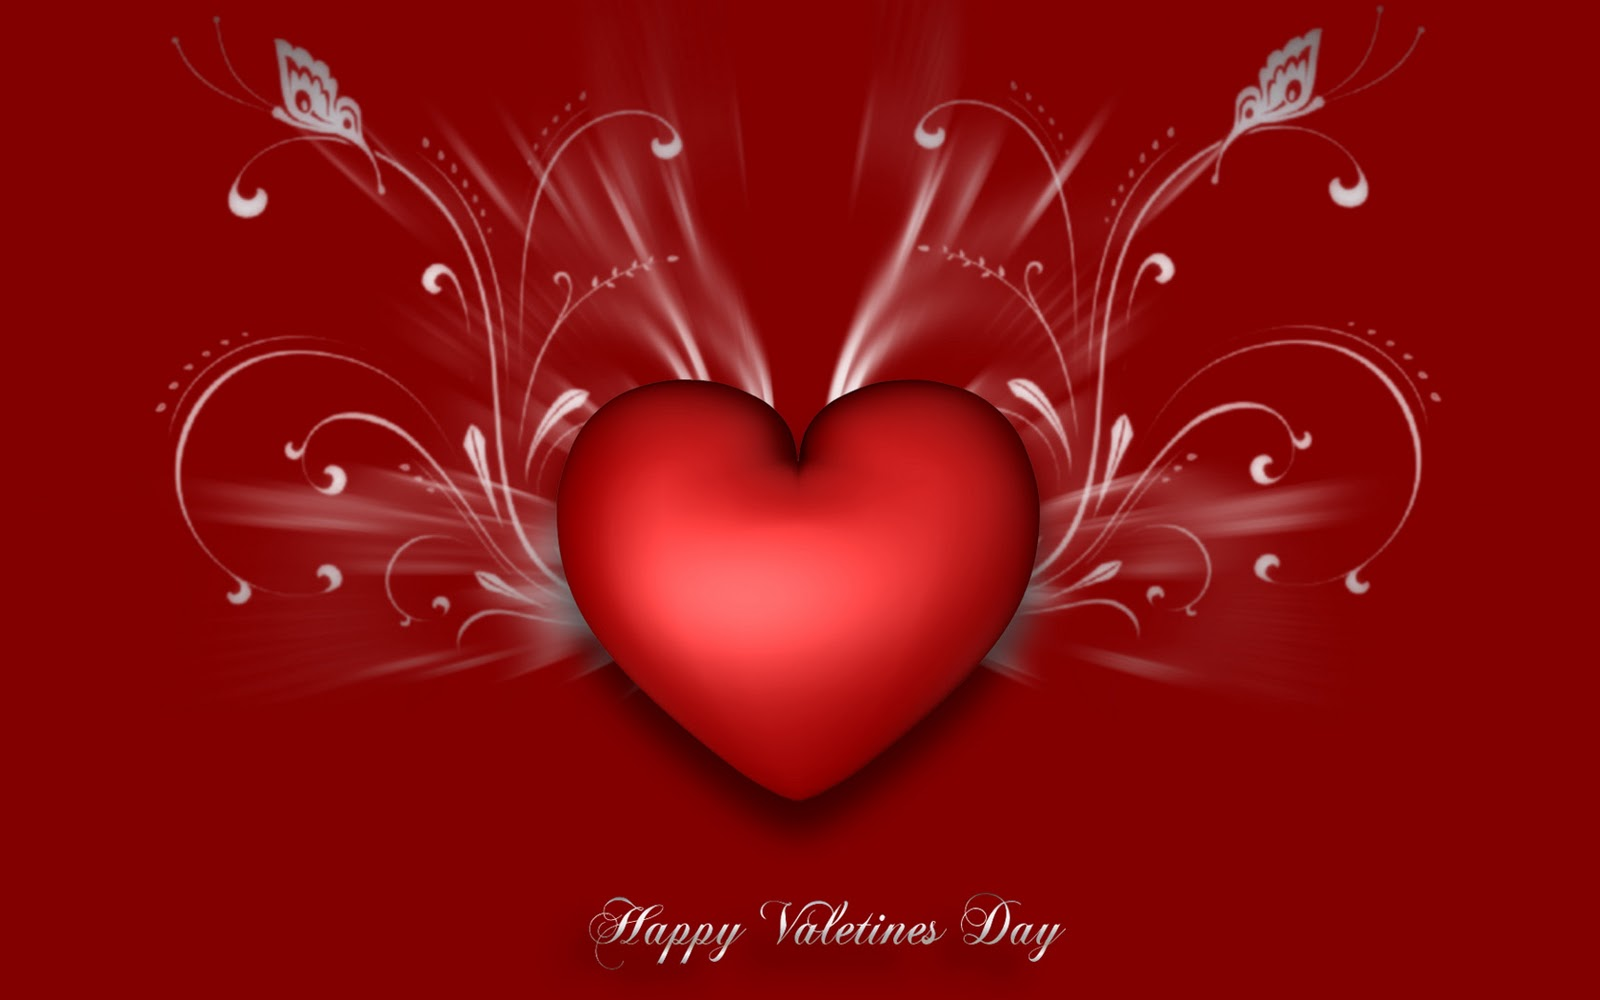 valentines day wallpaper 2012  I  Celebes